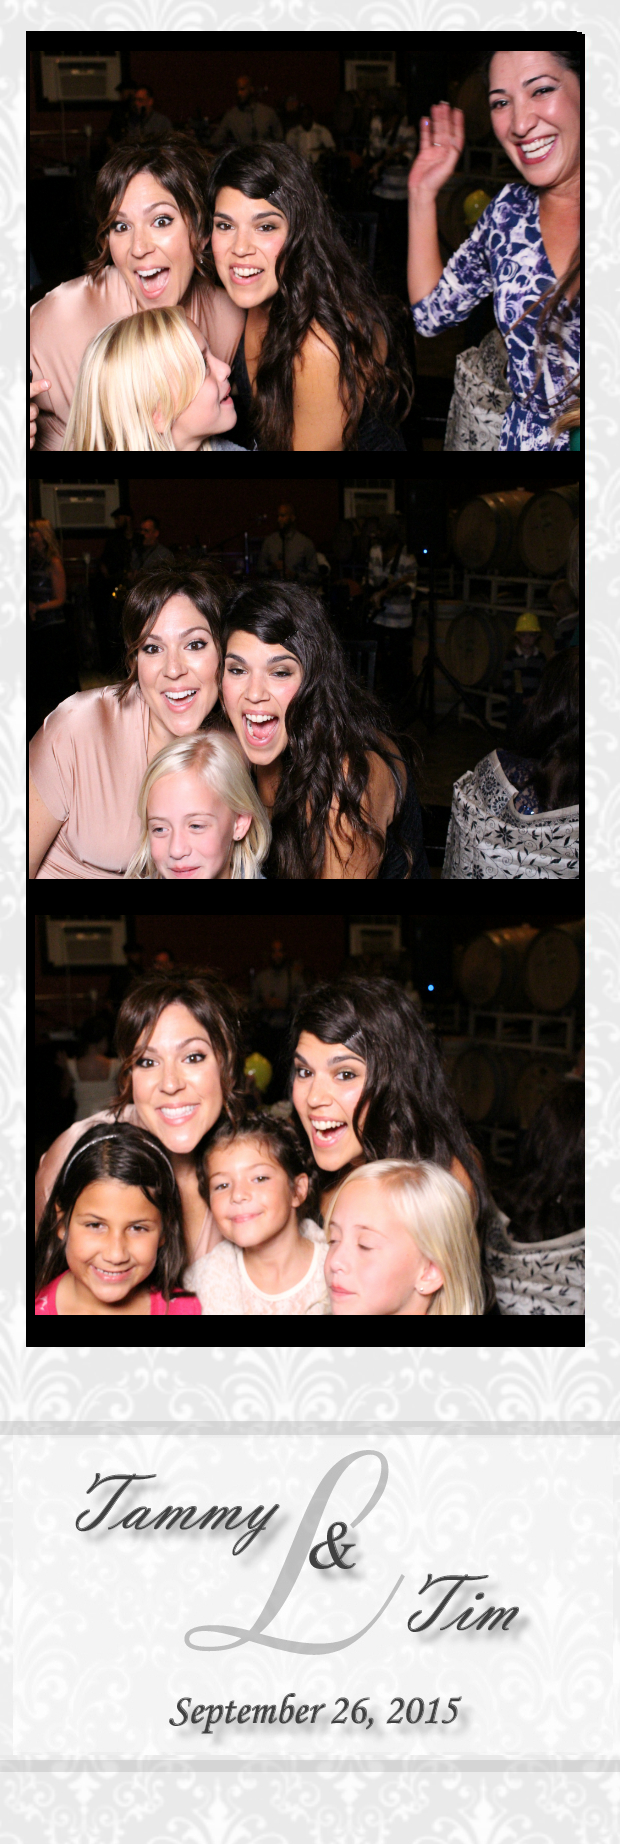 Guest House Events Photo Booth Strips T&T (24).jpg